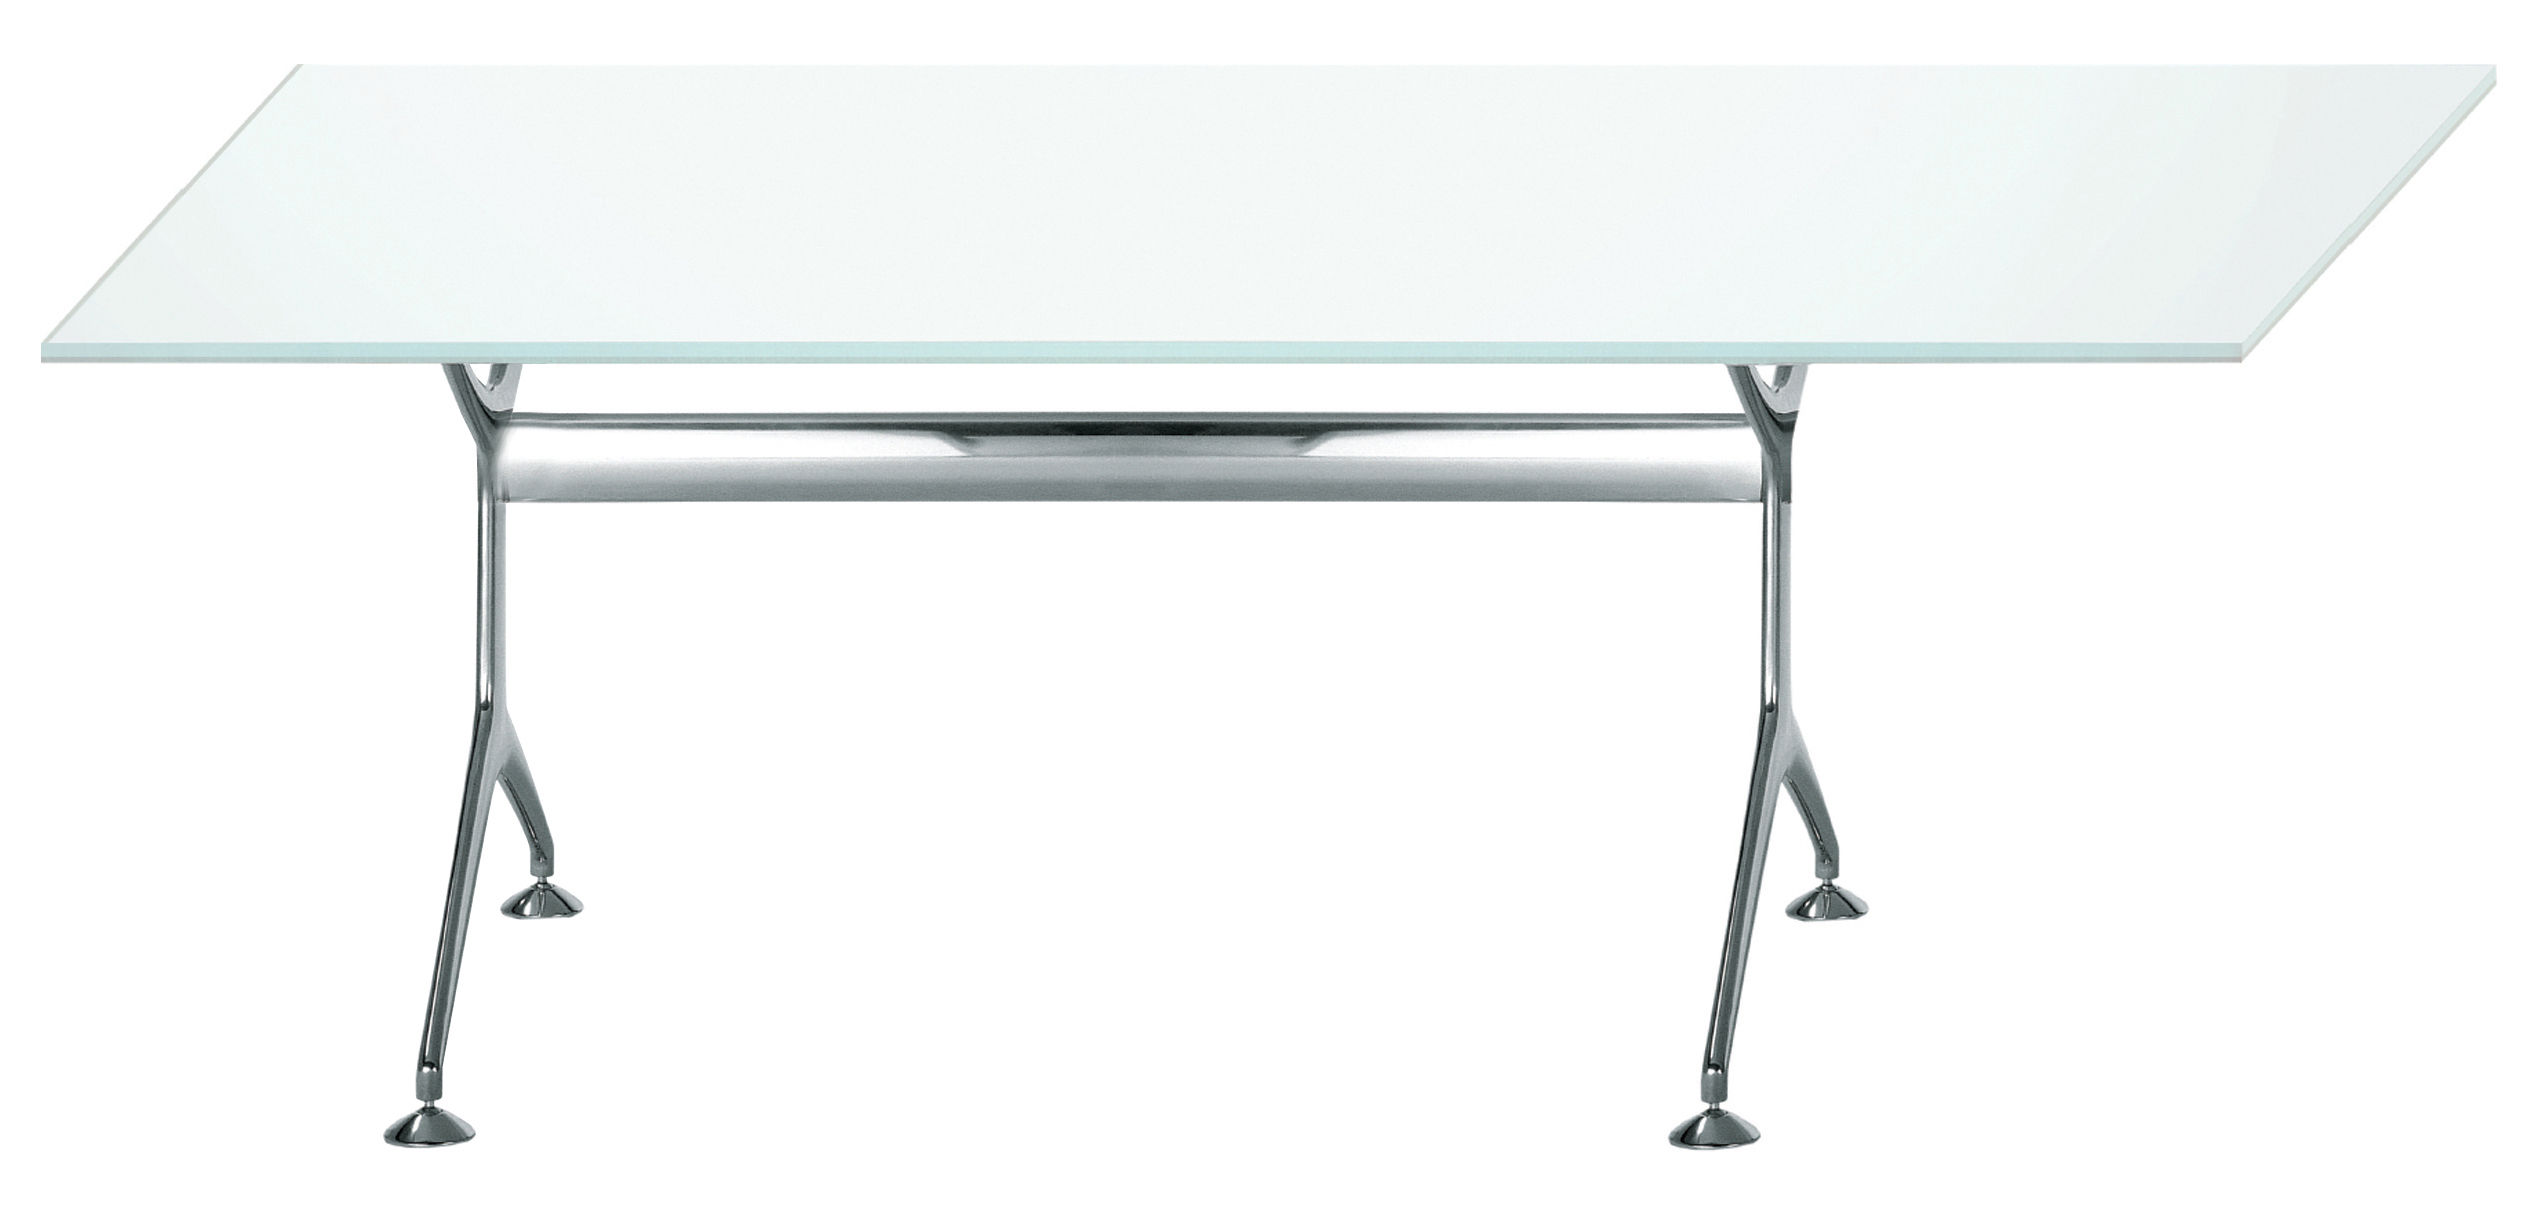 Furniture - Office Furniture - Frametable Rectangular table - 160 x 80 cm by Alias - Polished aluminium structure / white glass top - Glass, Polished aluminium